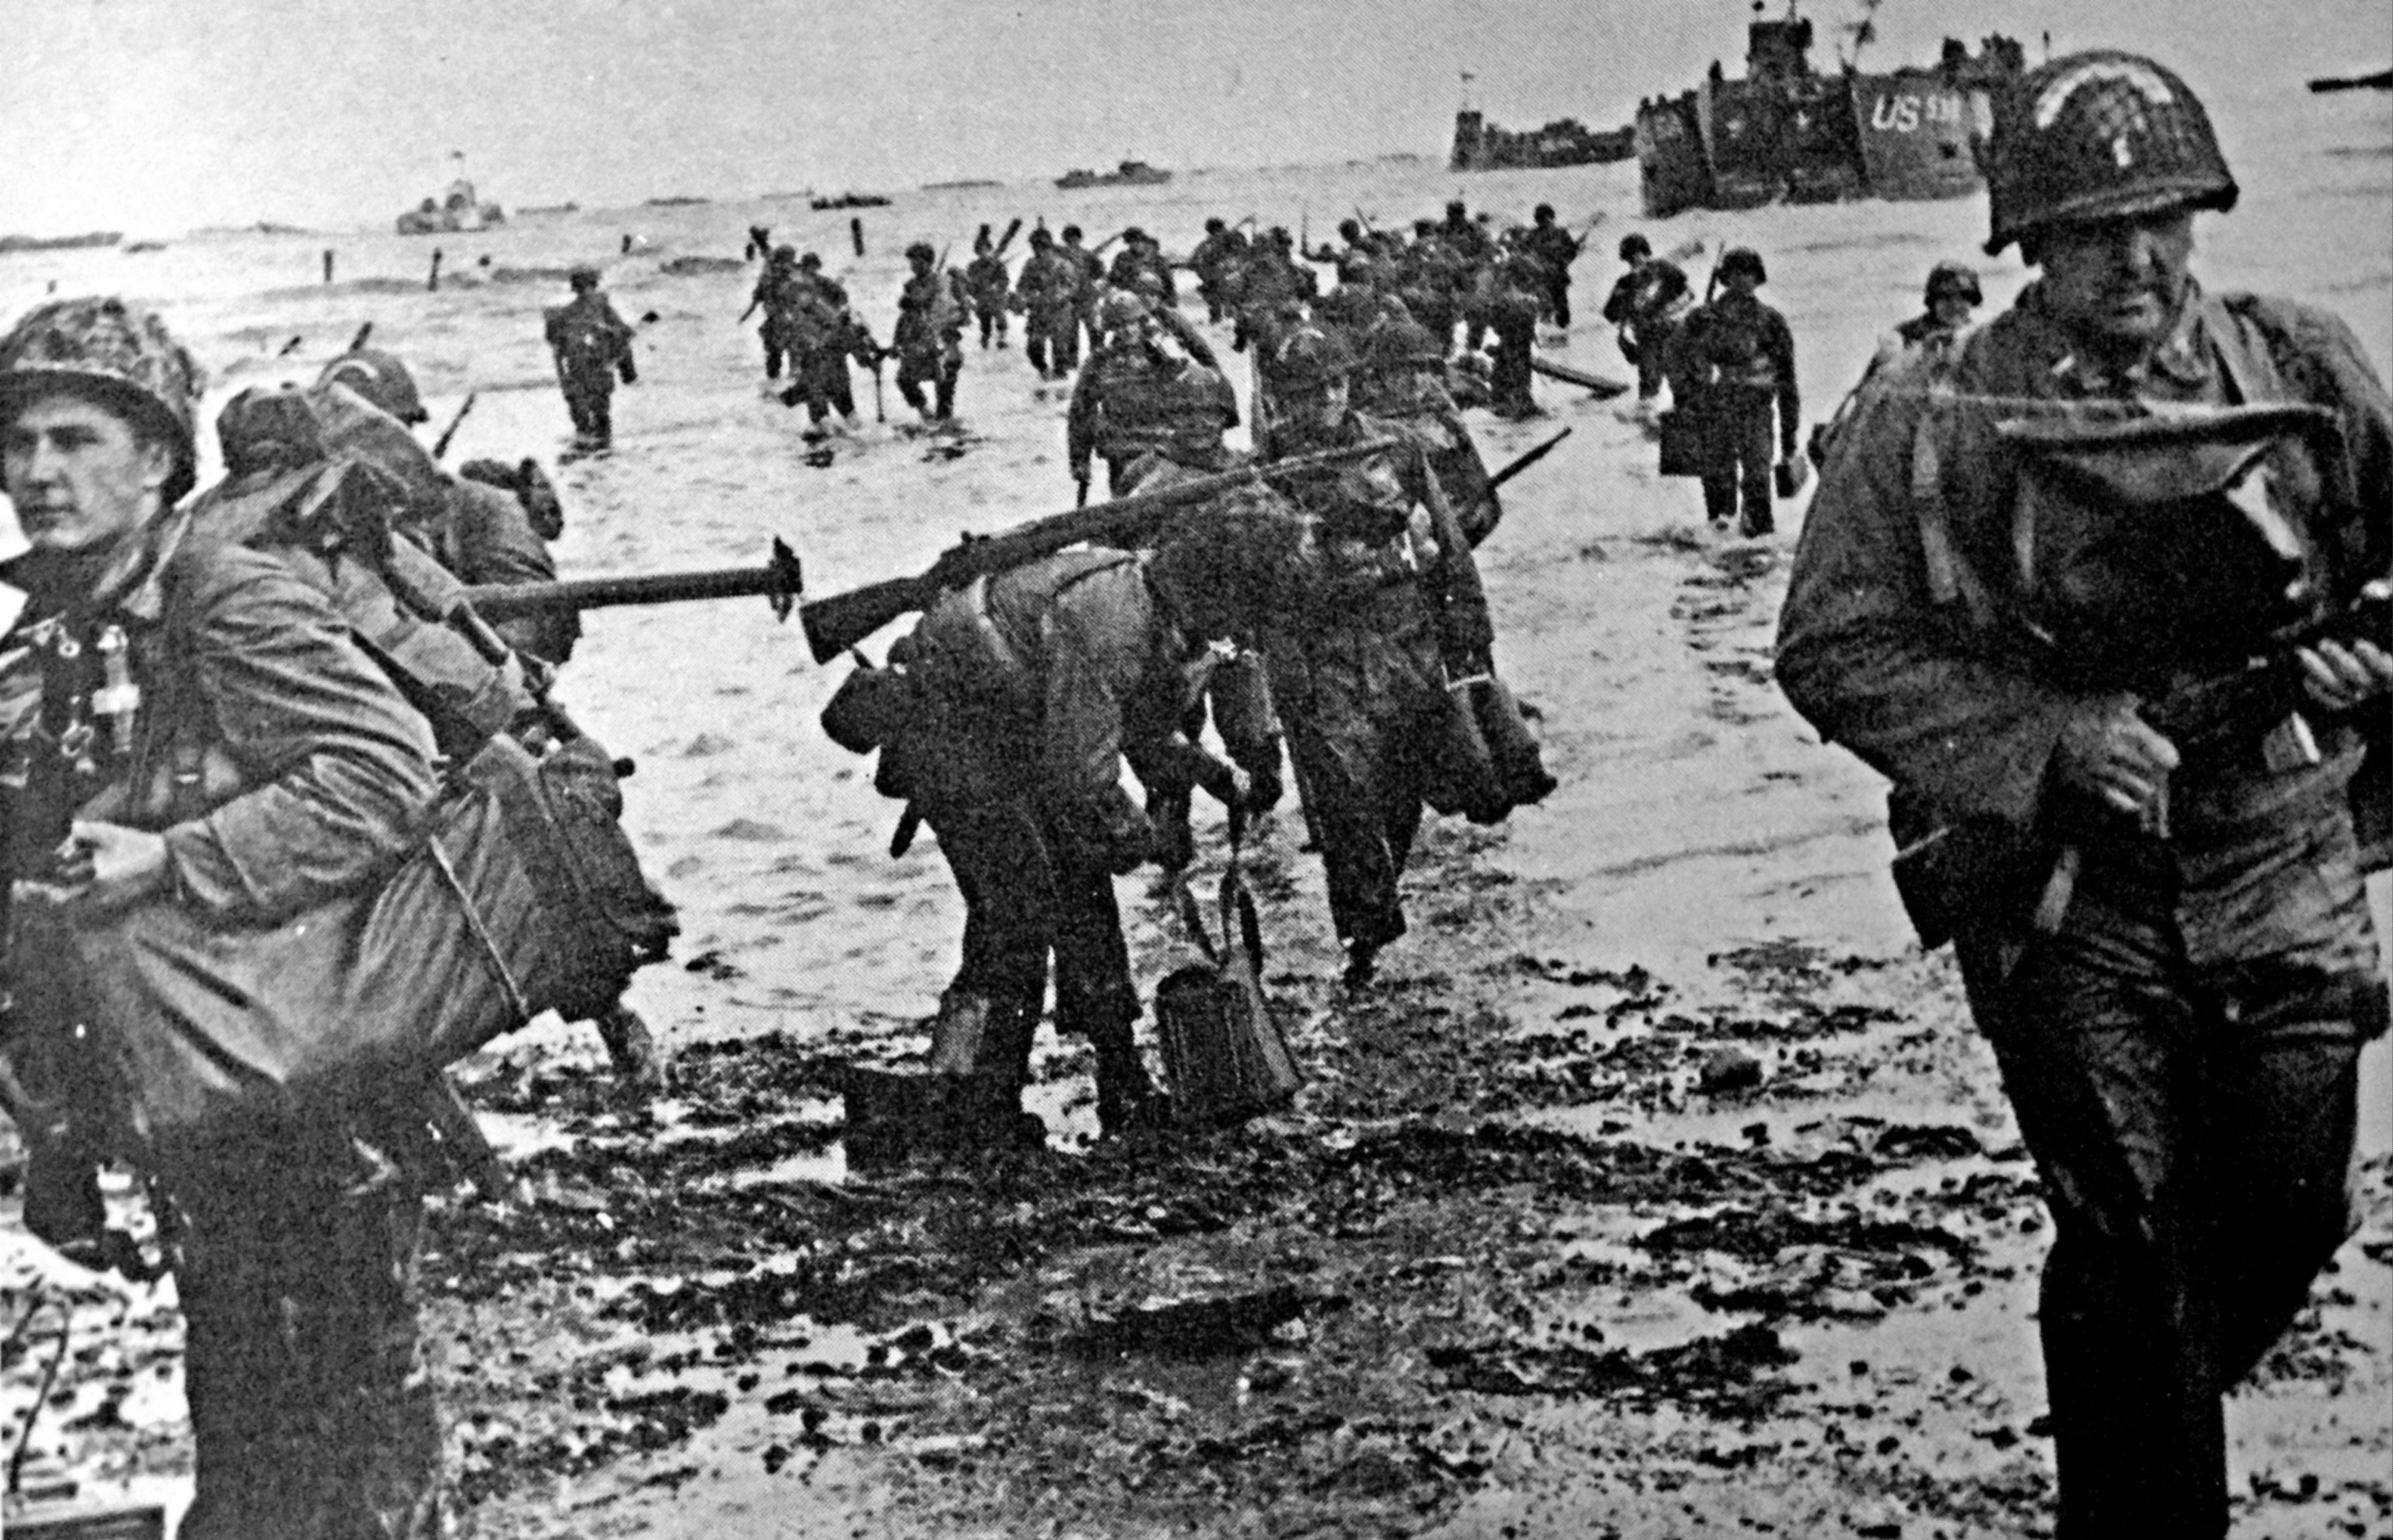 Normandy Landings 2017: What the D in 'D-Day' actually means